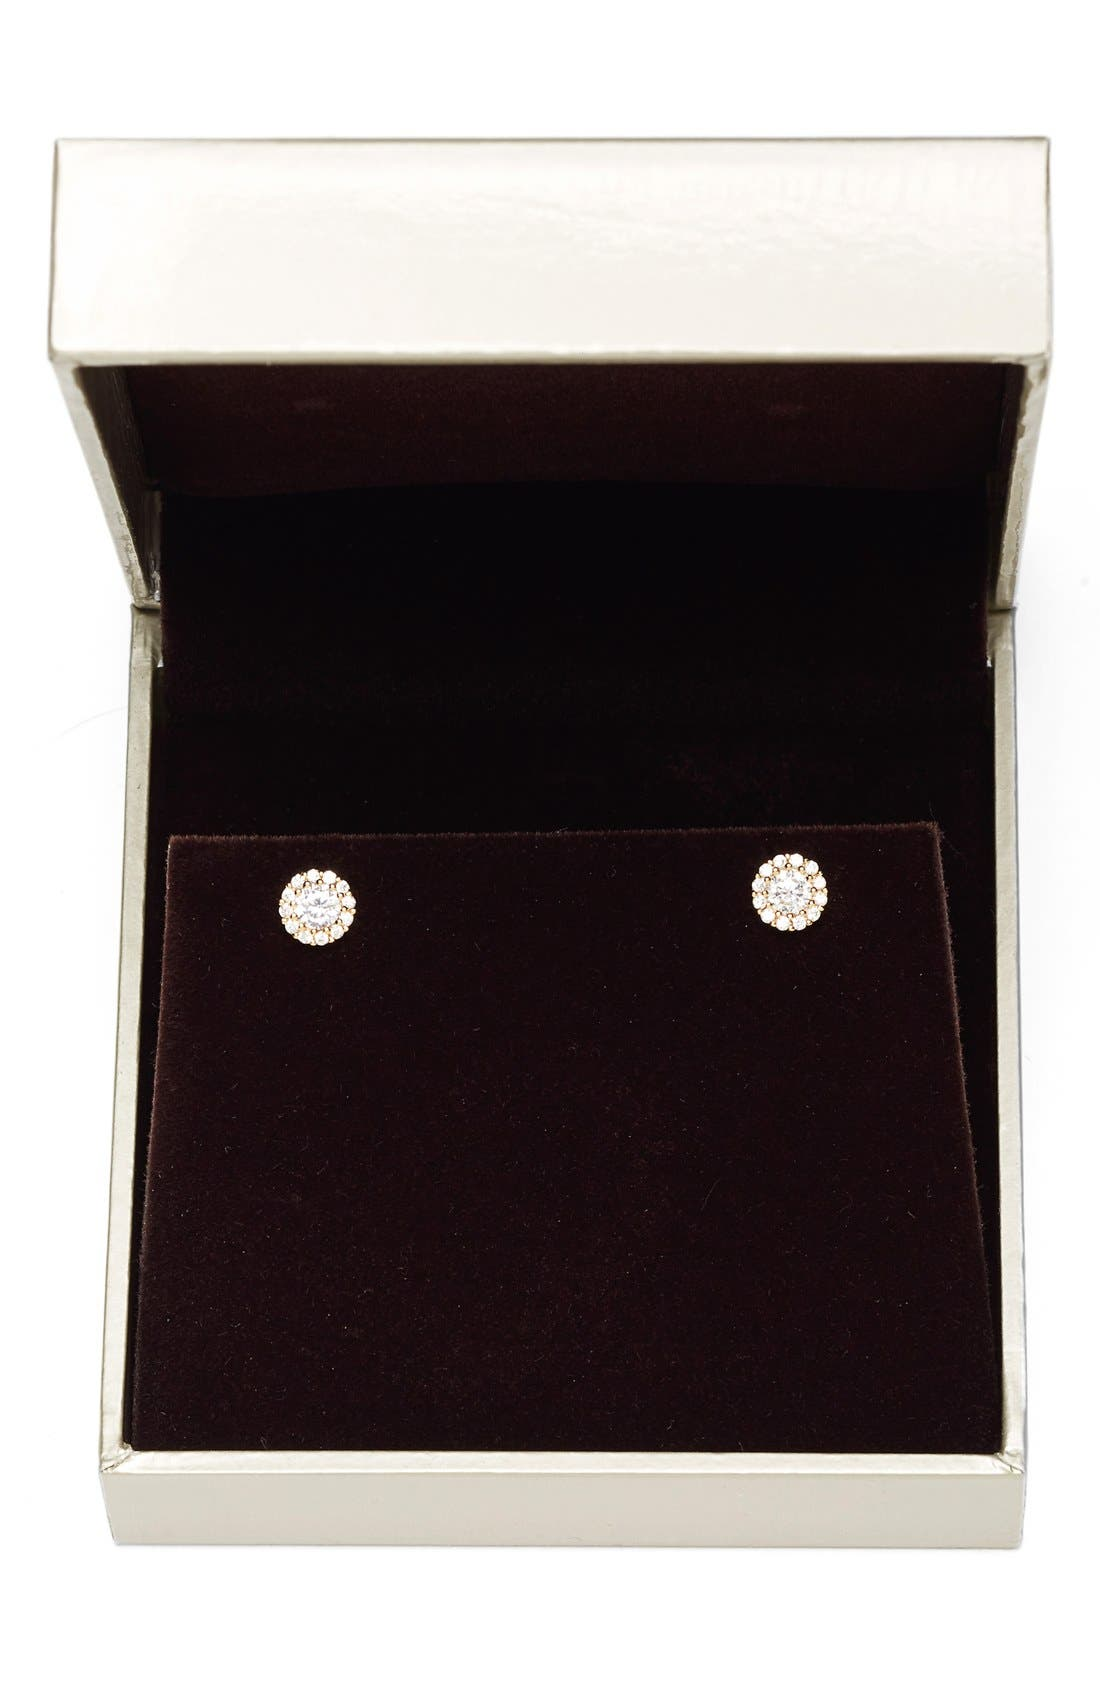 Precious Metal Plated 0.50ct tw Cubic Zirconia Stud Earrings,                             Alternate thumbnail 3, color,                             Gold